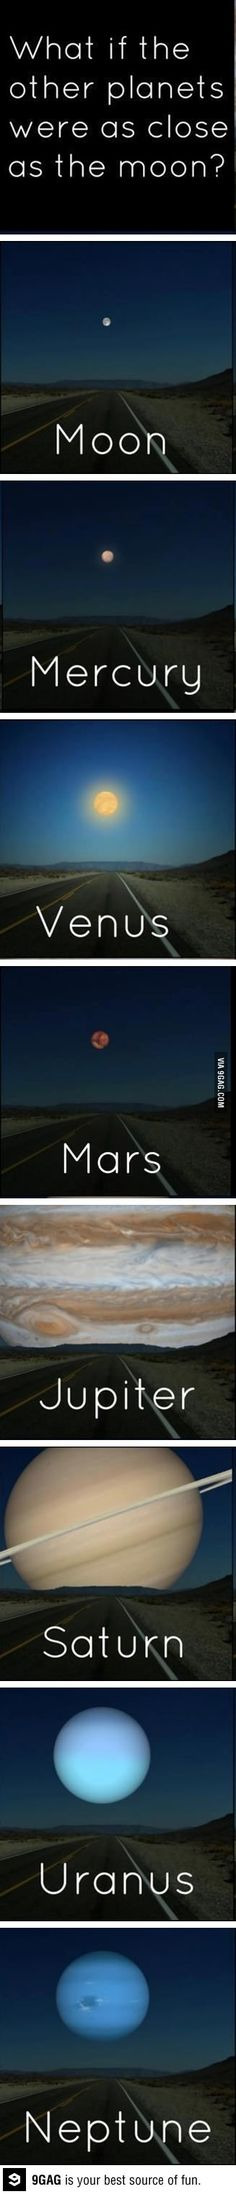 What if the other planets were as close as the moon?! Mind = Blown